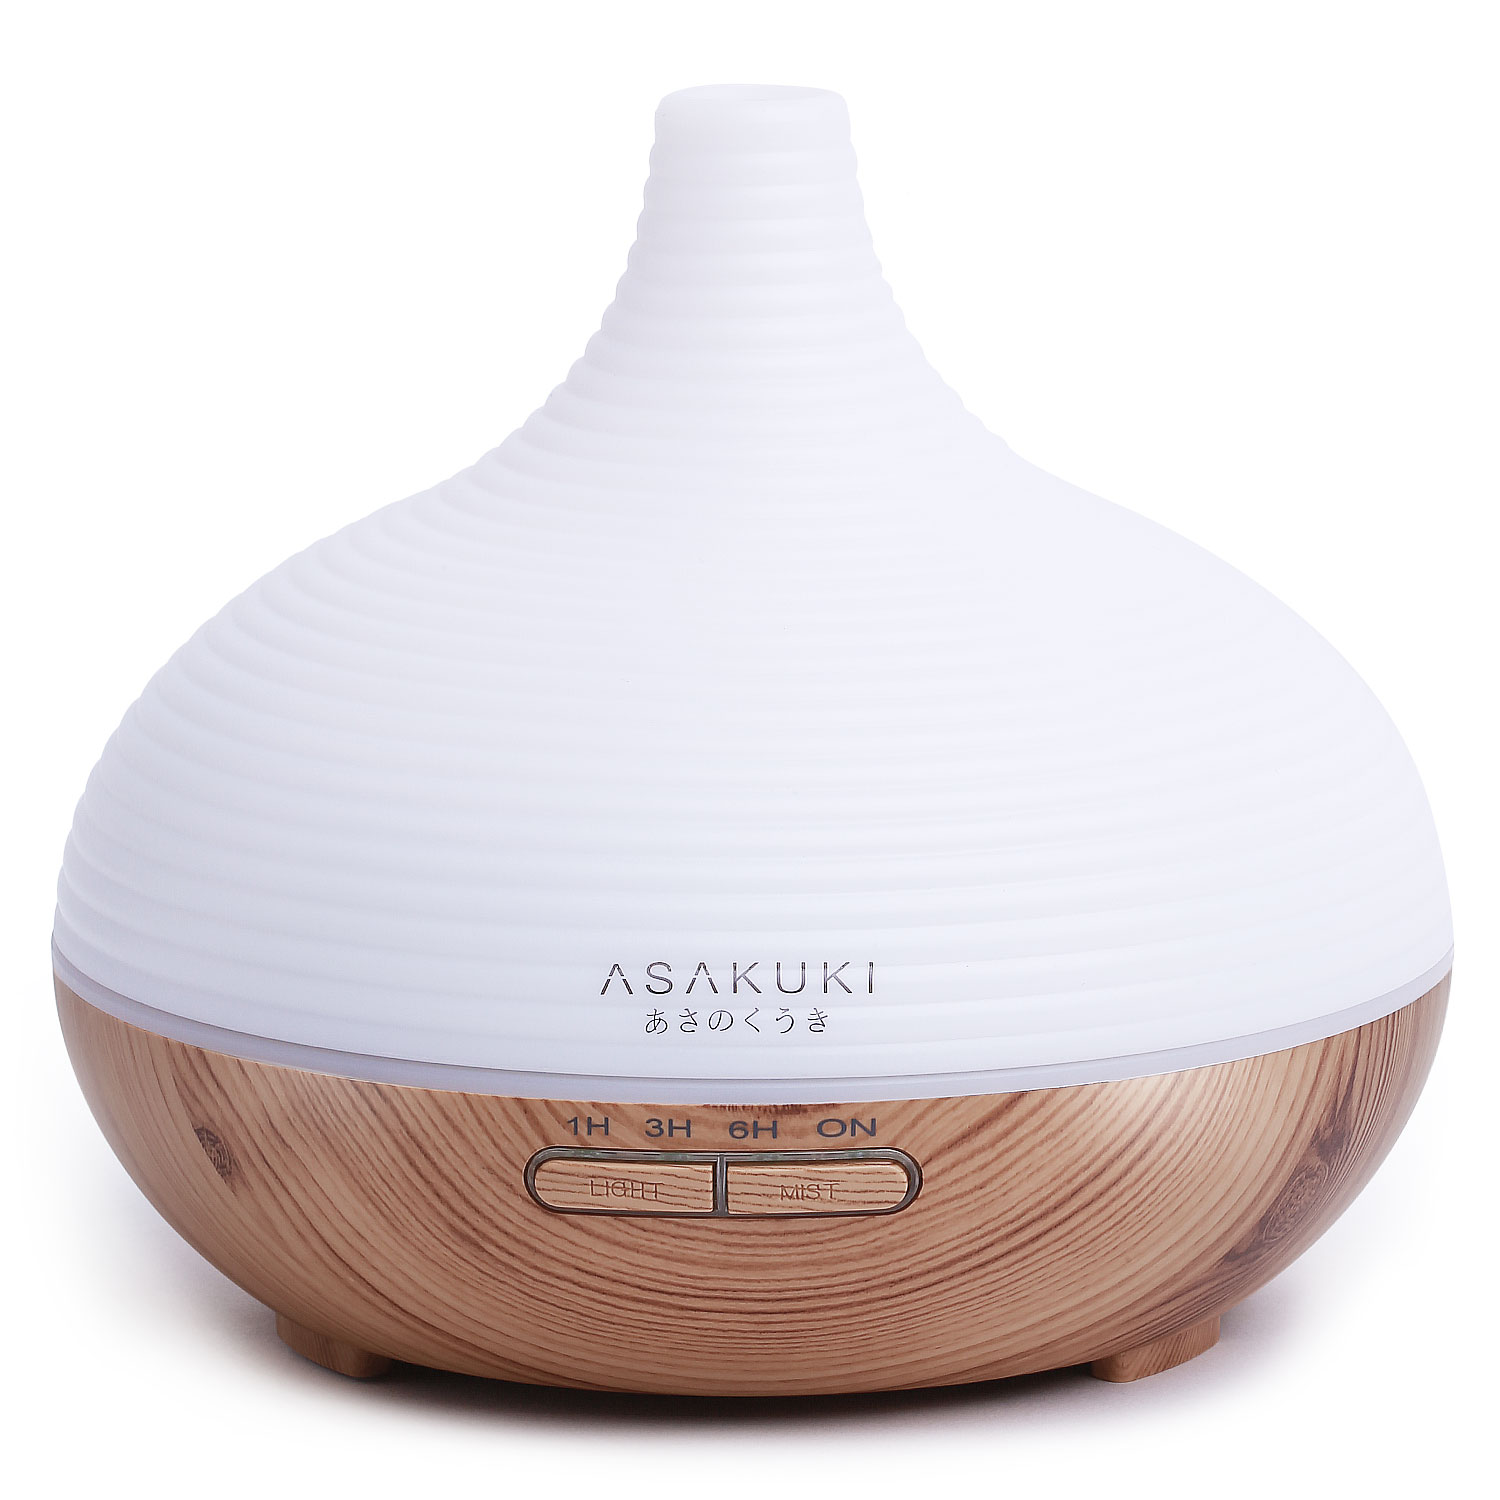 ASAKUKI 300ML Premium, Essential Oil Diffuser, Quiet 5-In-1 Humidifier, 7 LED Color Changing Light